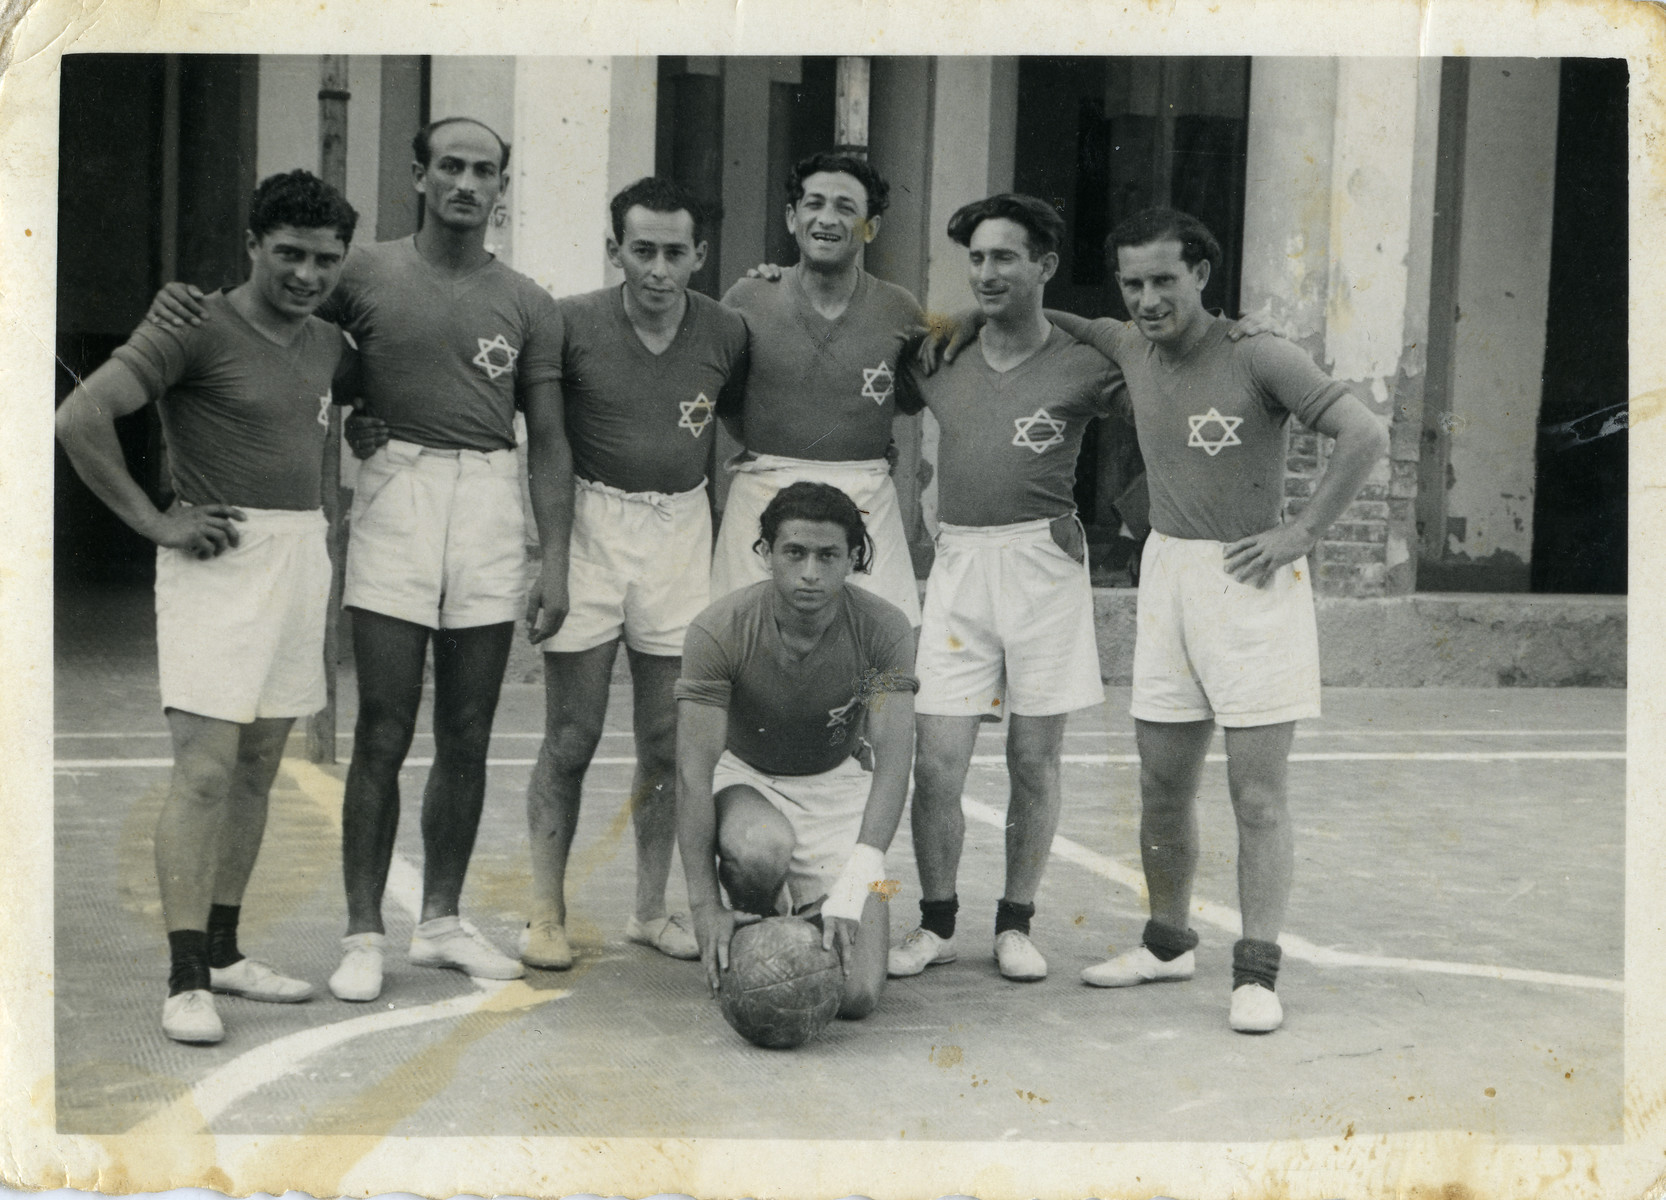 Members of the Cremona DP camp soccer team pose for a team photograph.  Leib (Leon) Kagan is pictured third from the right,.